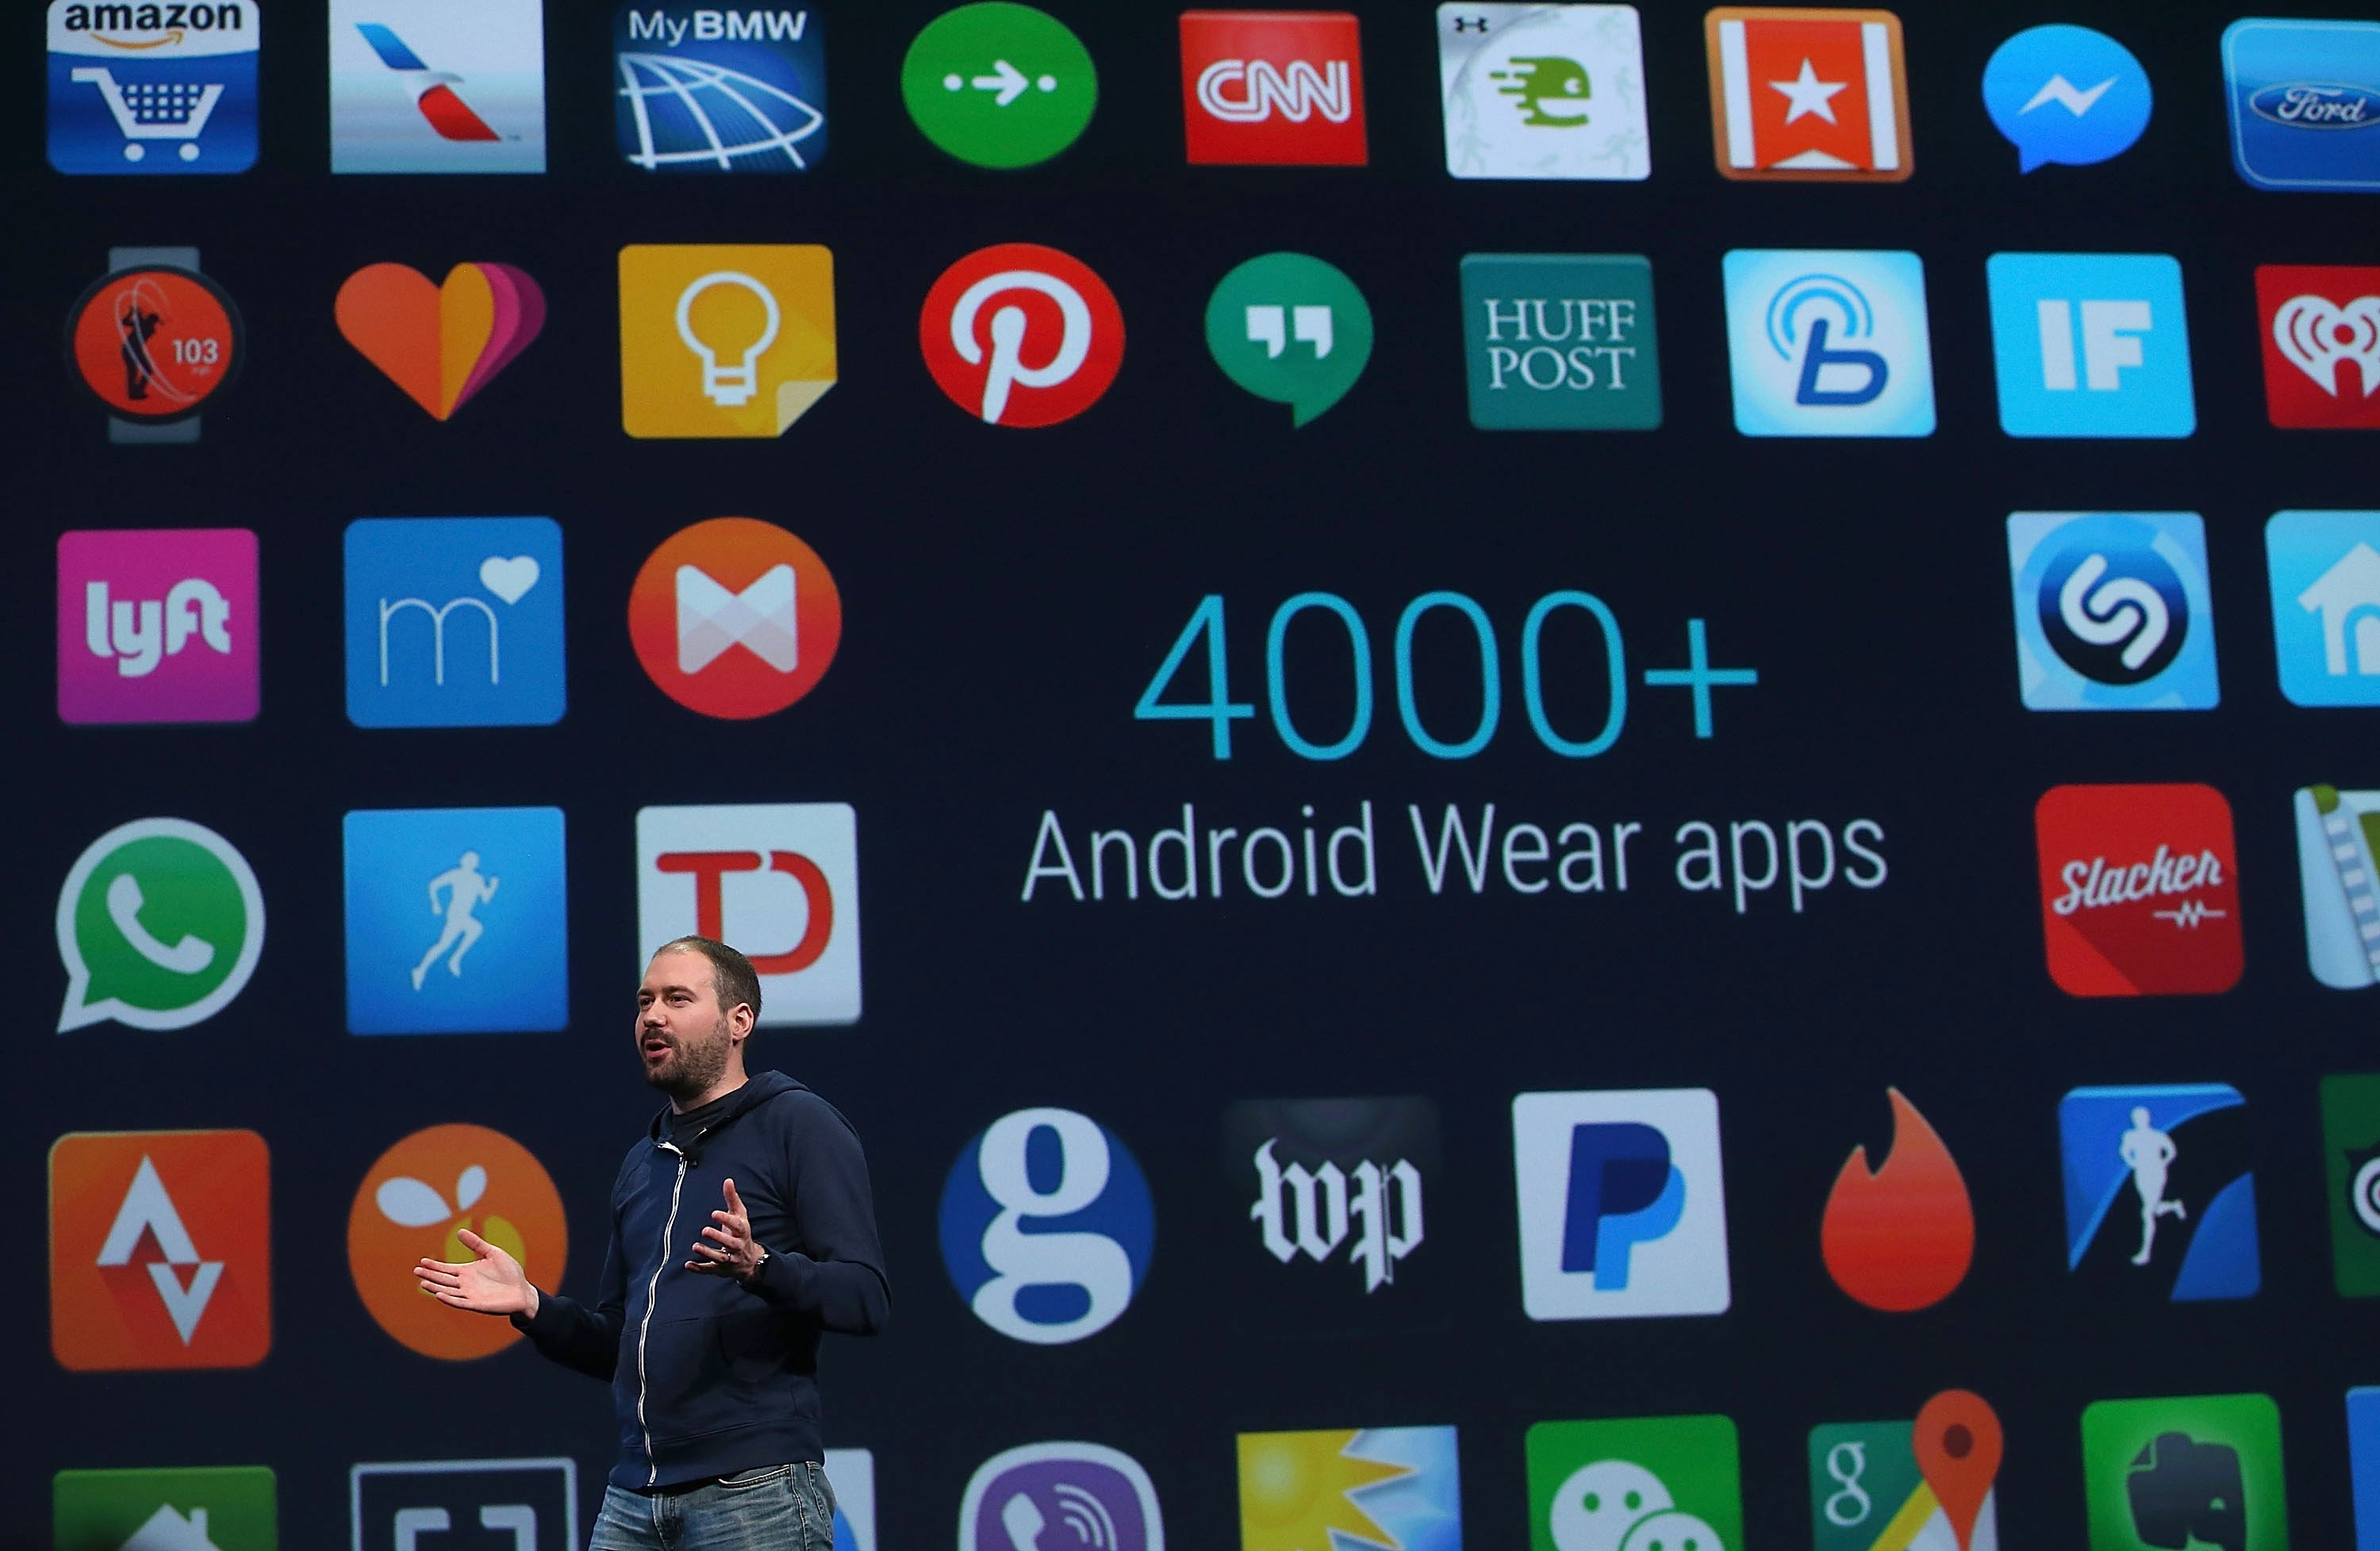 Google said there are now over 4,000 Android Wear apps available, and previewed new Android Wear apps including Uber and Shazam.